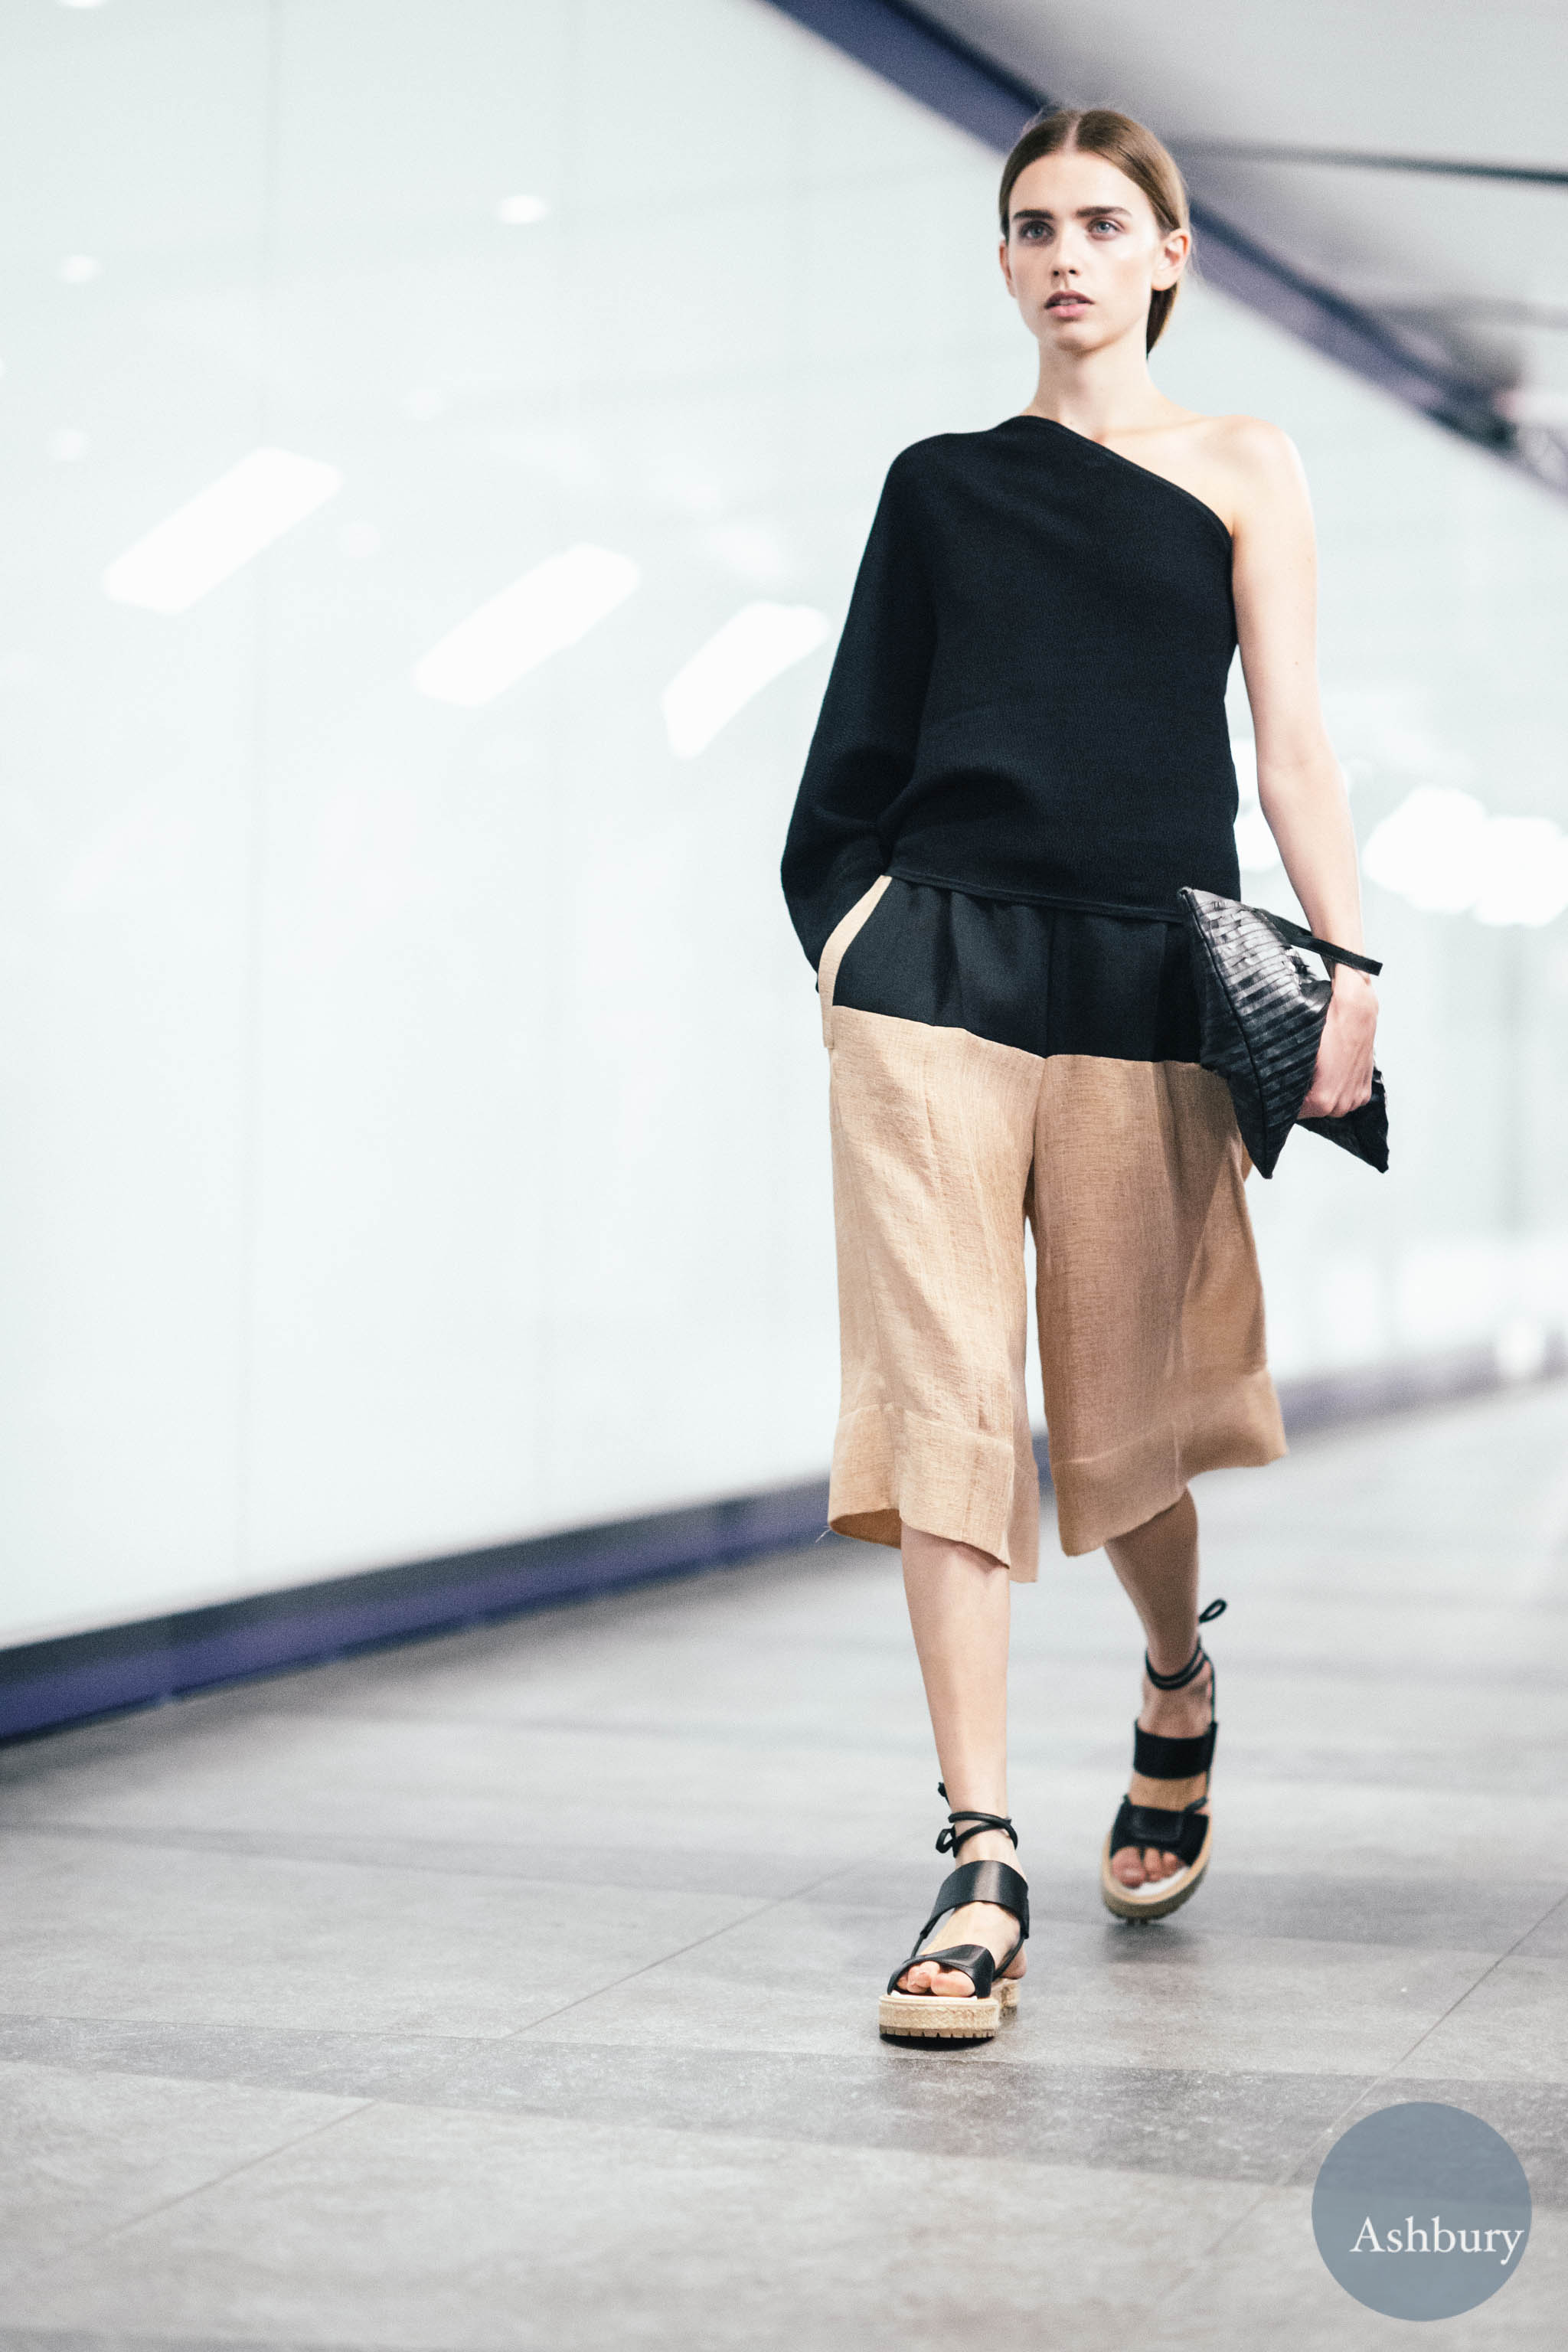 whistles ss15 (4)